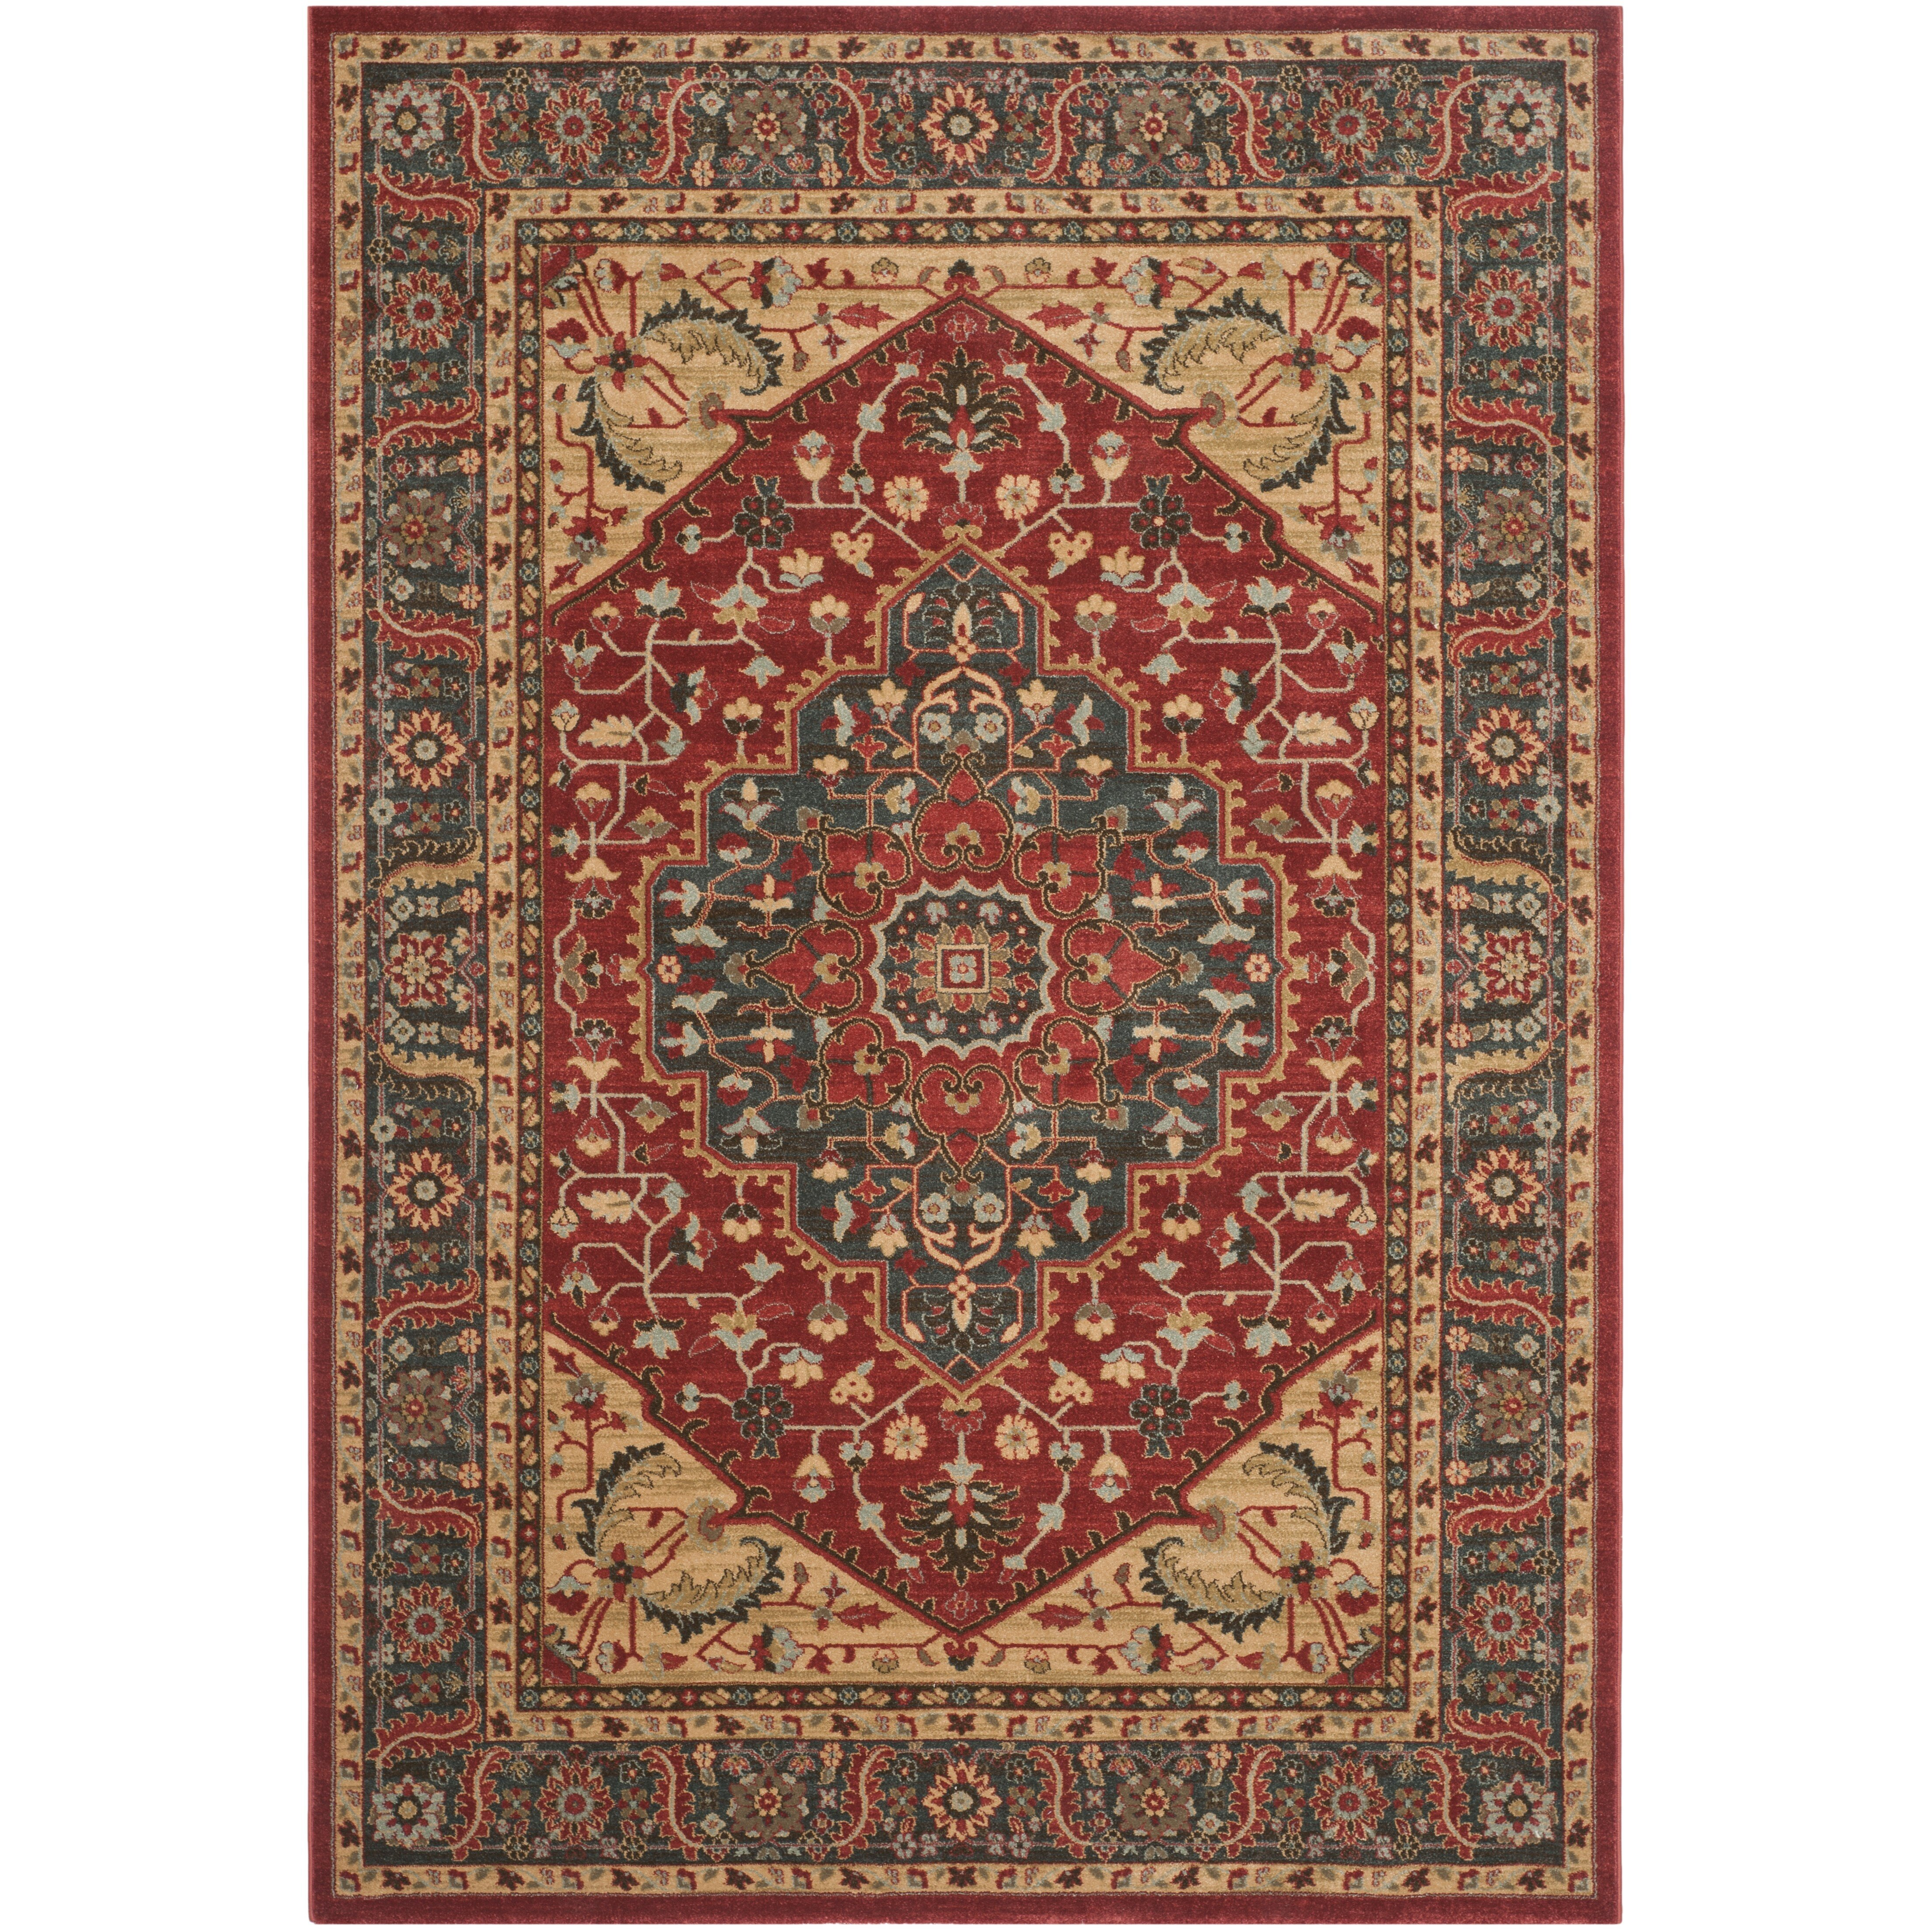 Safavieh mahal navy red area rug reviews wayfair for Red and navy rug